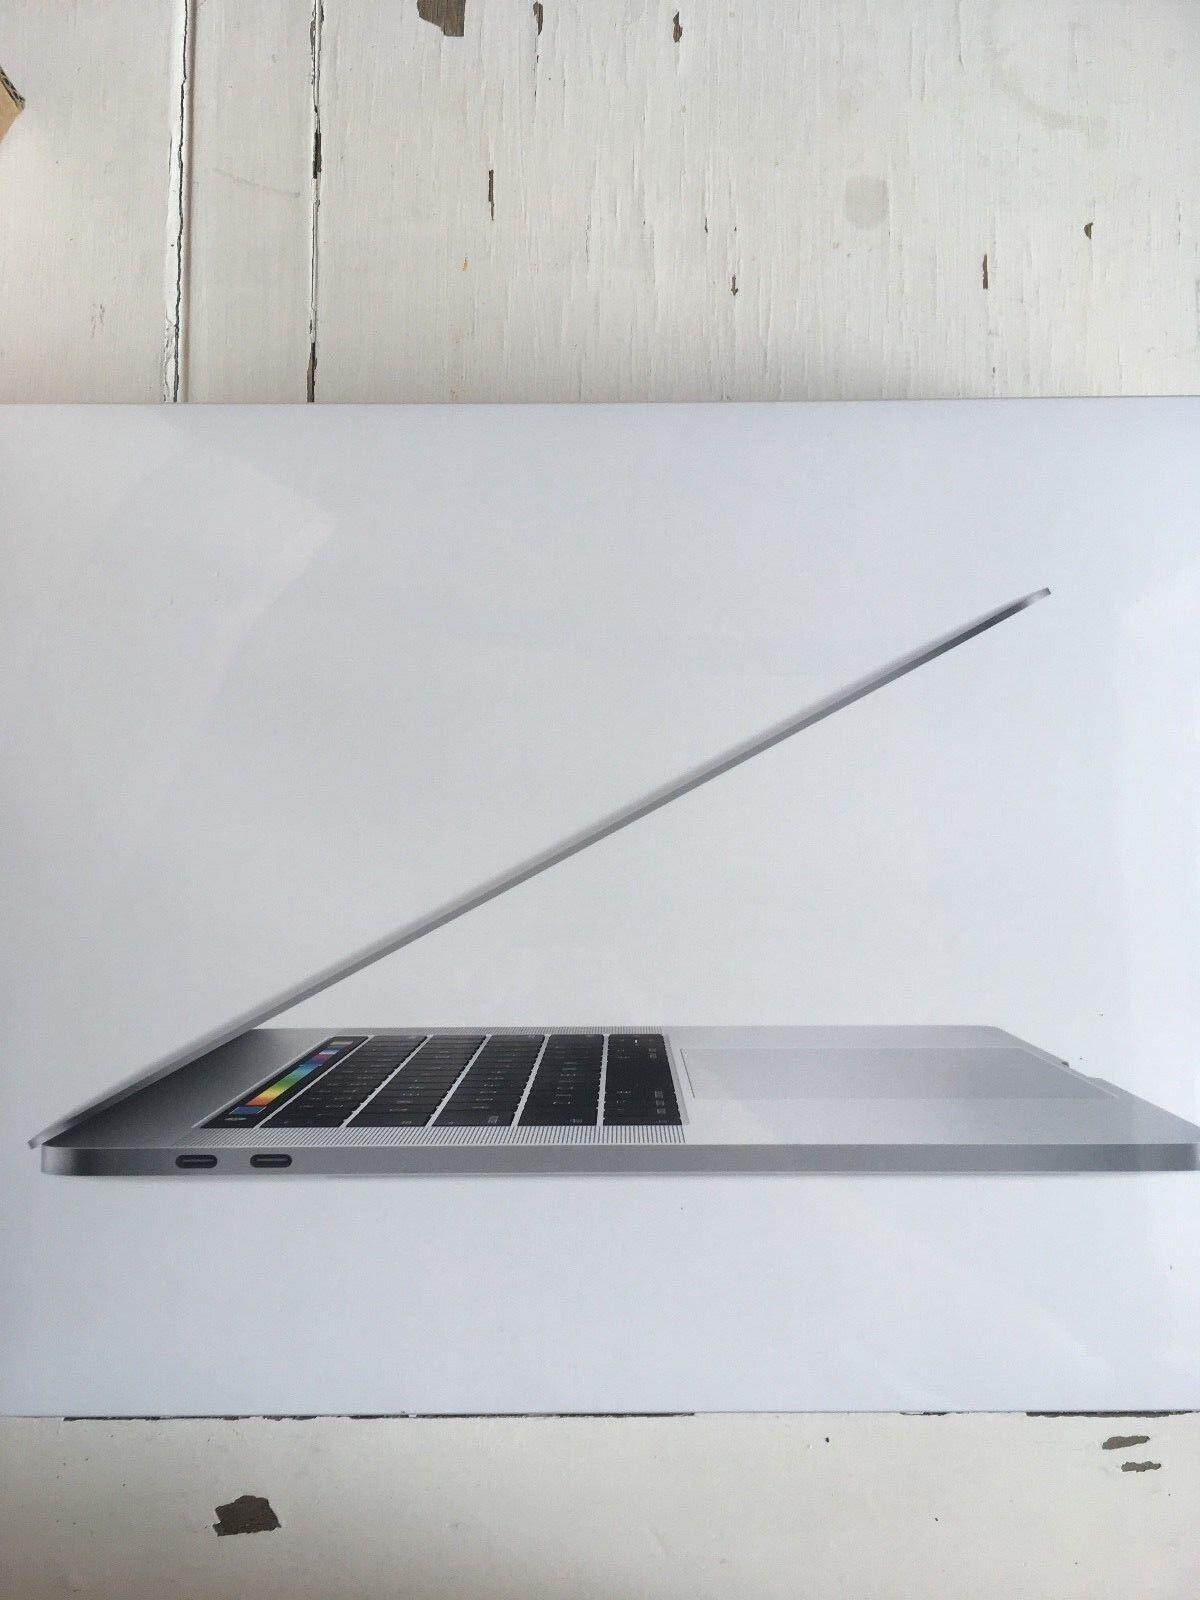 MacBook Pro 15.4 2017 Touchbar 2.9/3.9Ghz i7, 512GB SSD, 16GB RAM 12M Warranty Malaysia